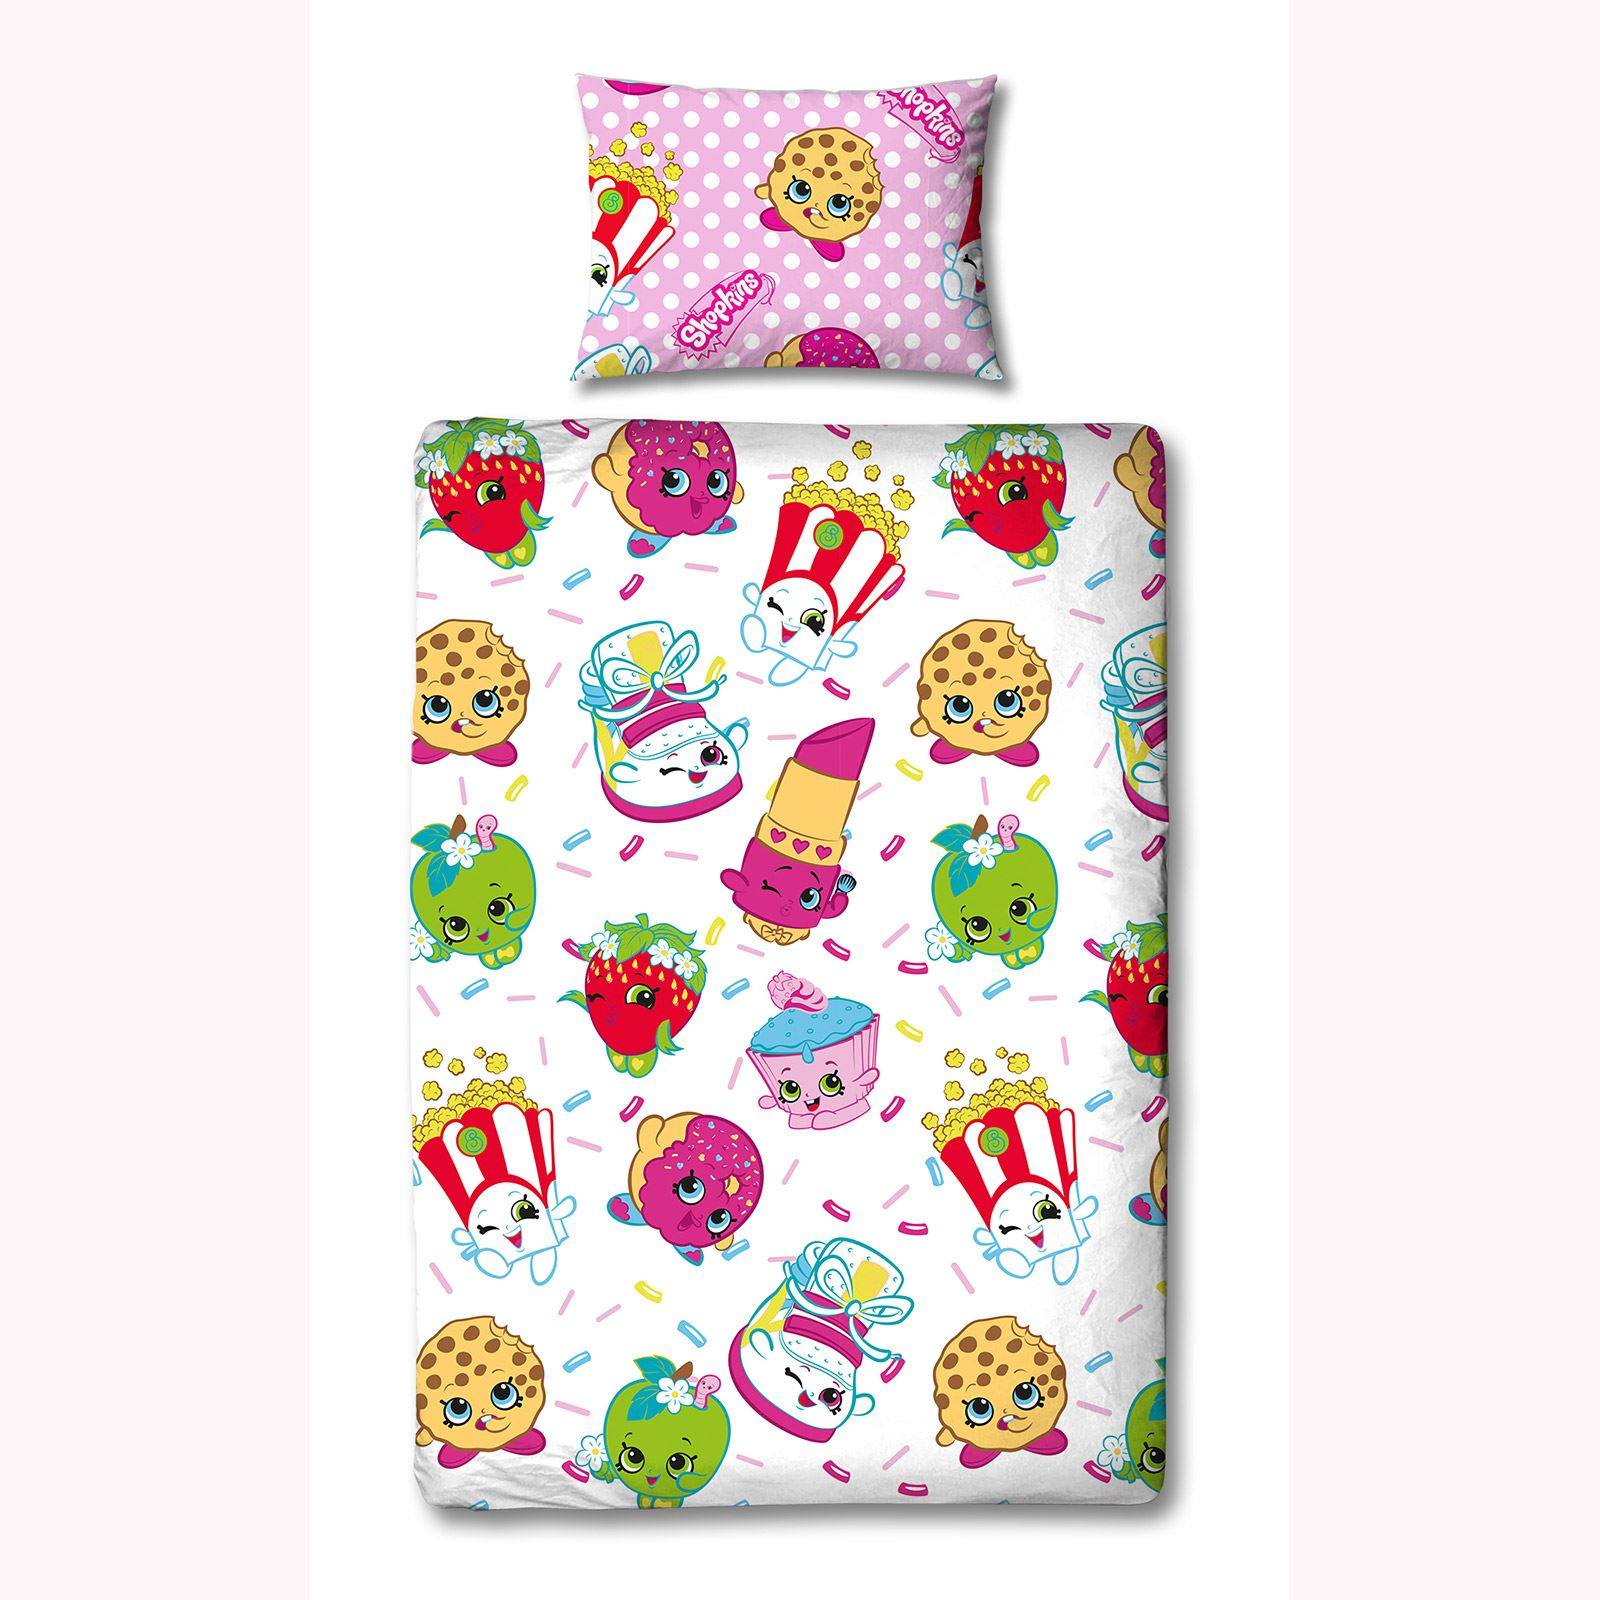 Shopkins Single Duvet Cover Sets Kids Bedding In Stock Now